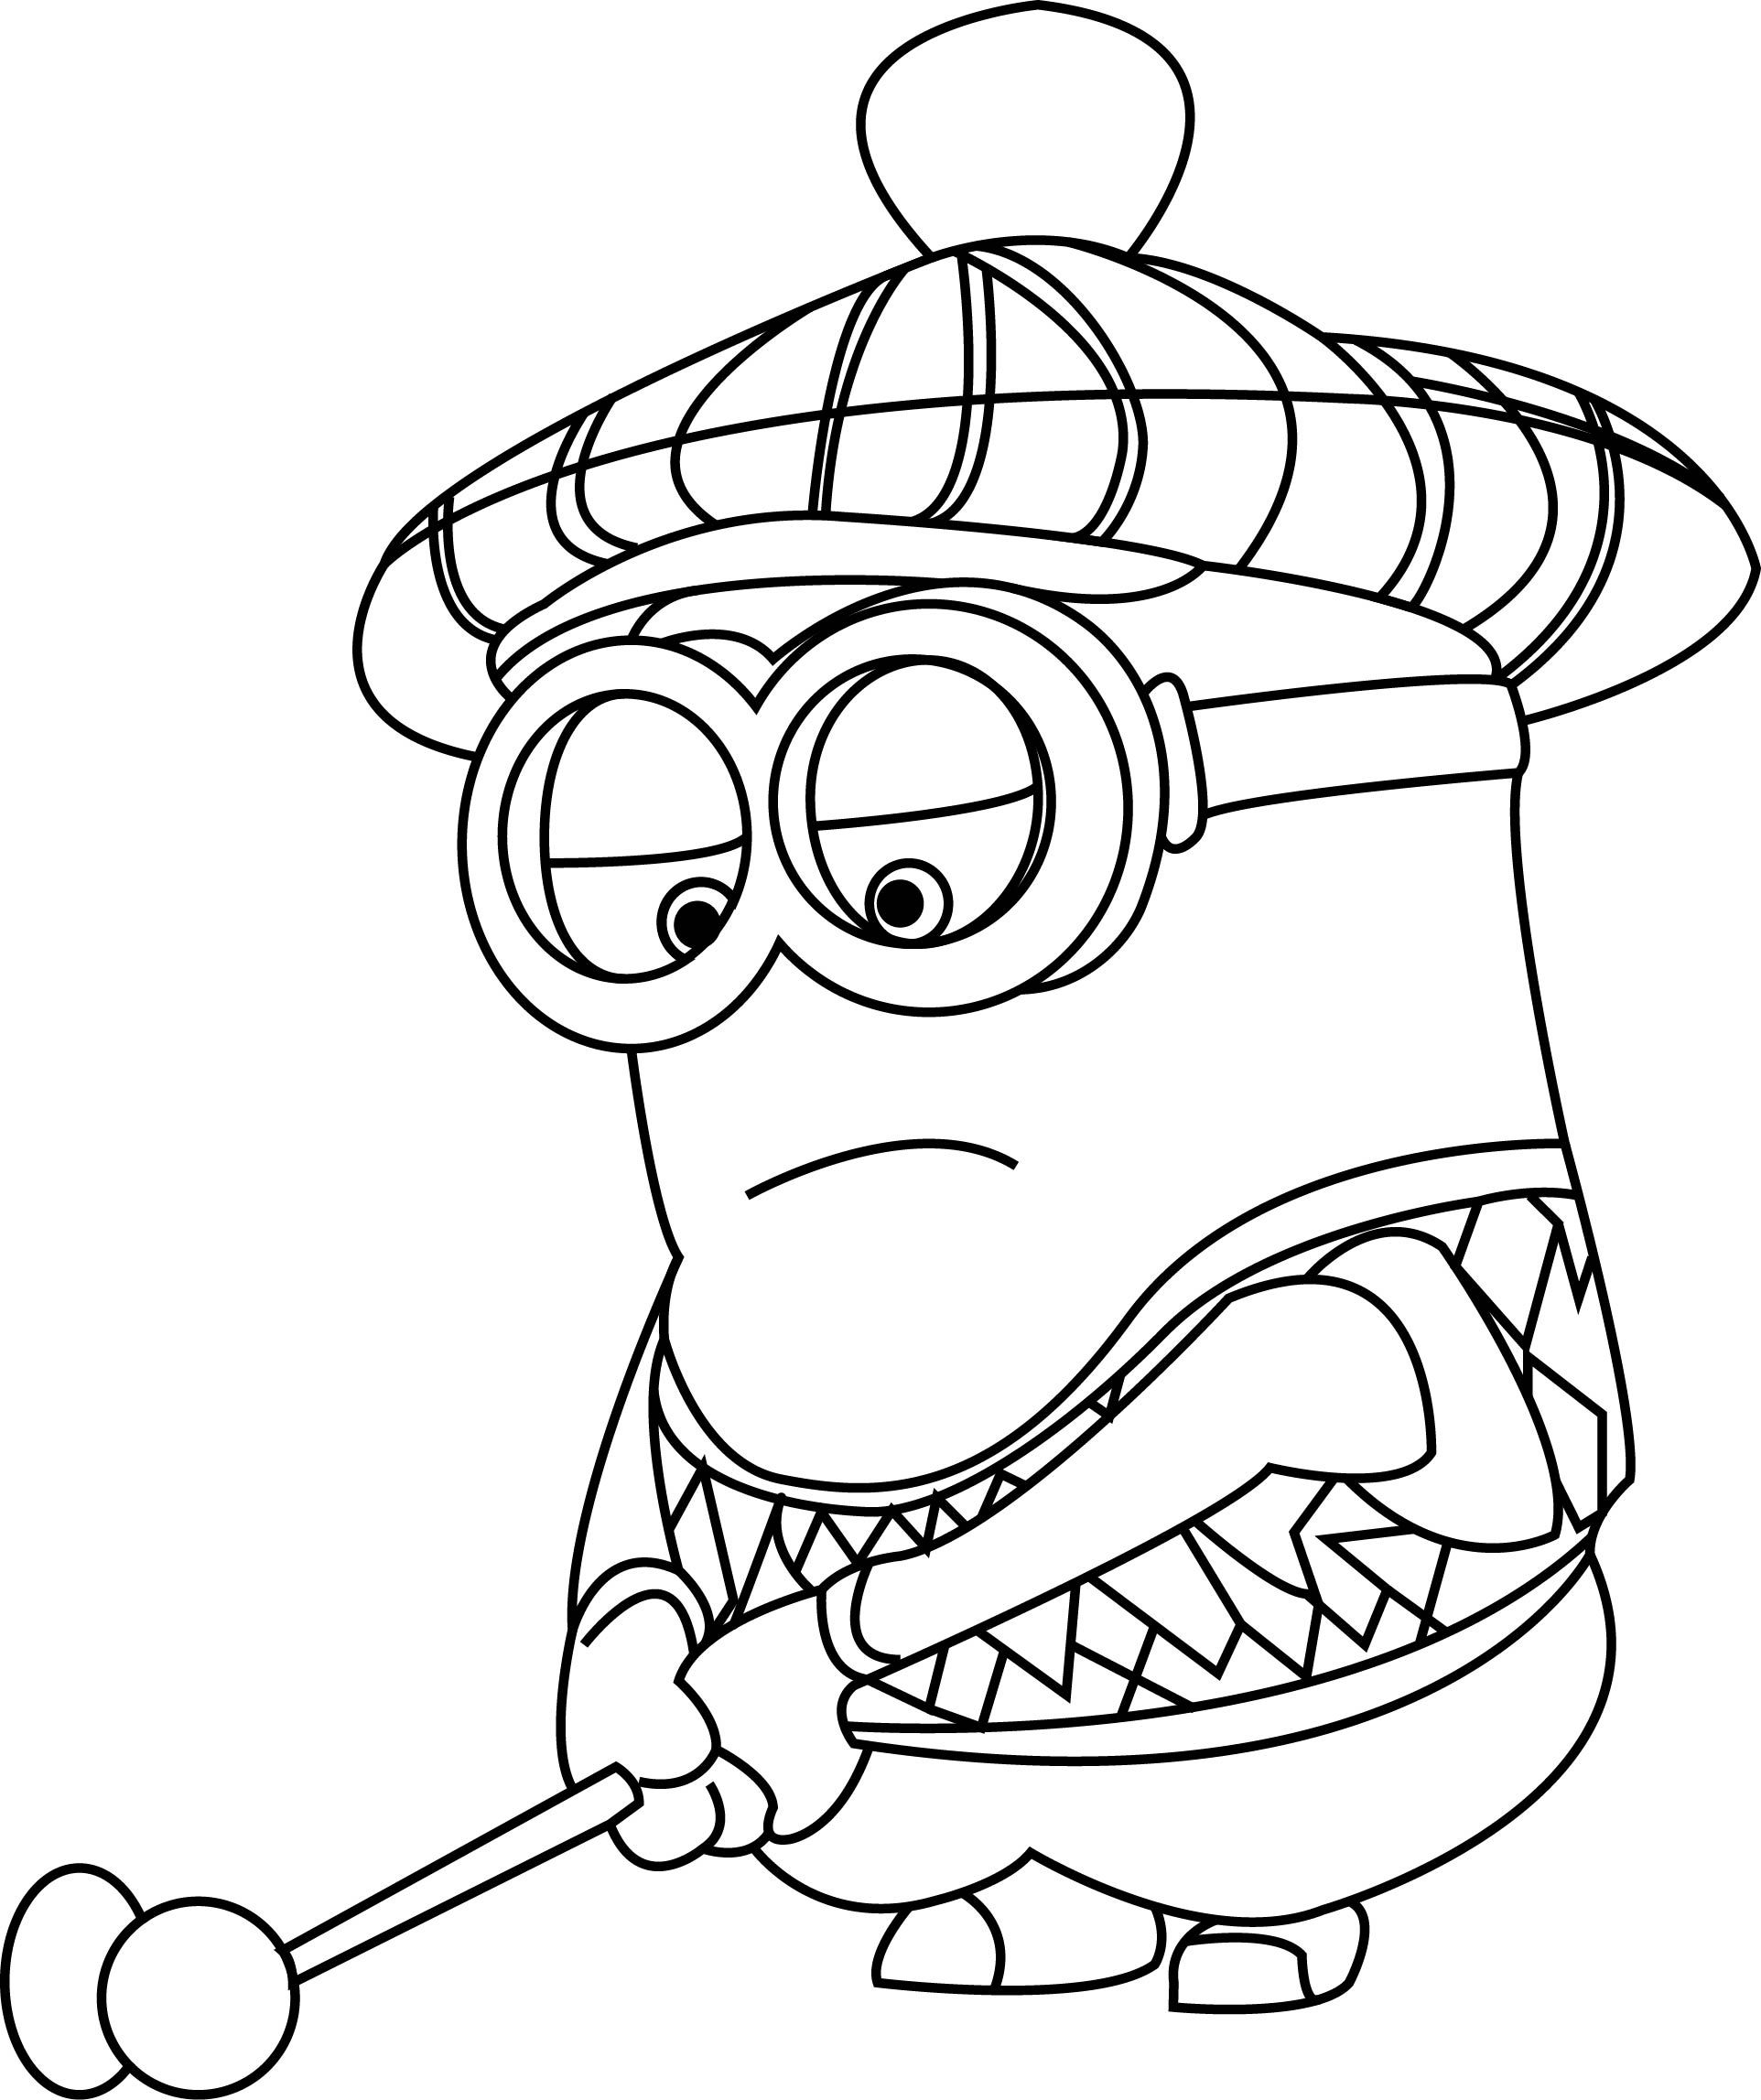 Despicable Me Golfer Minion Minion Coloring Pages Sports